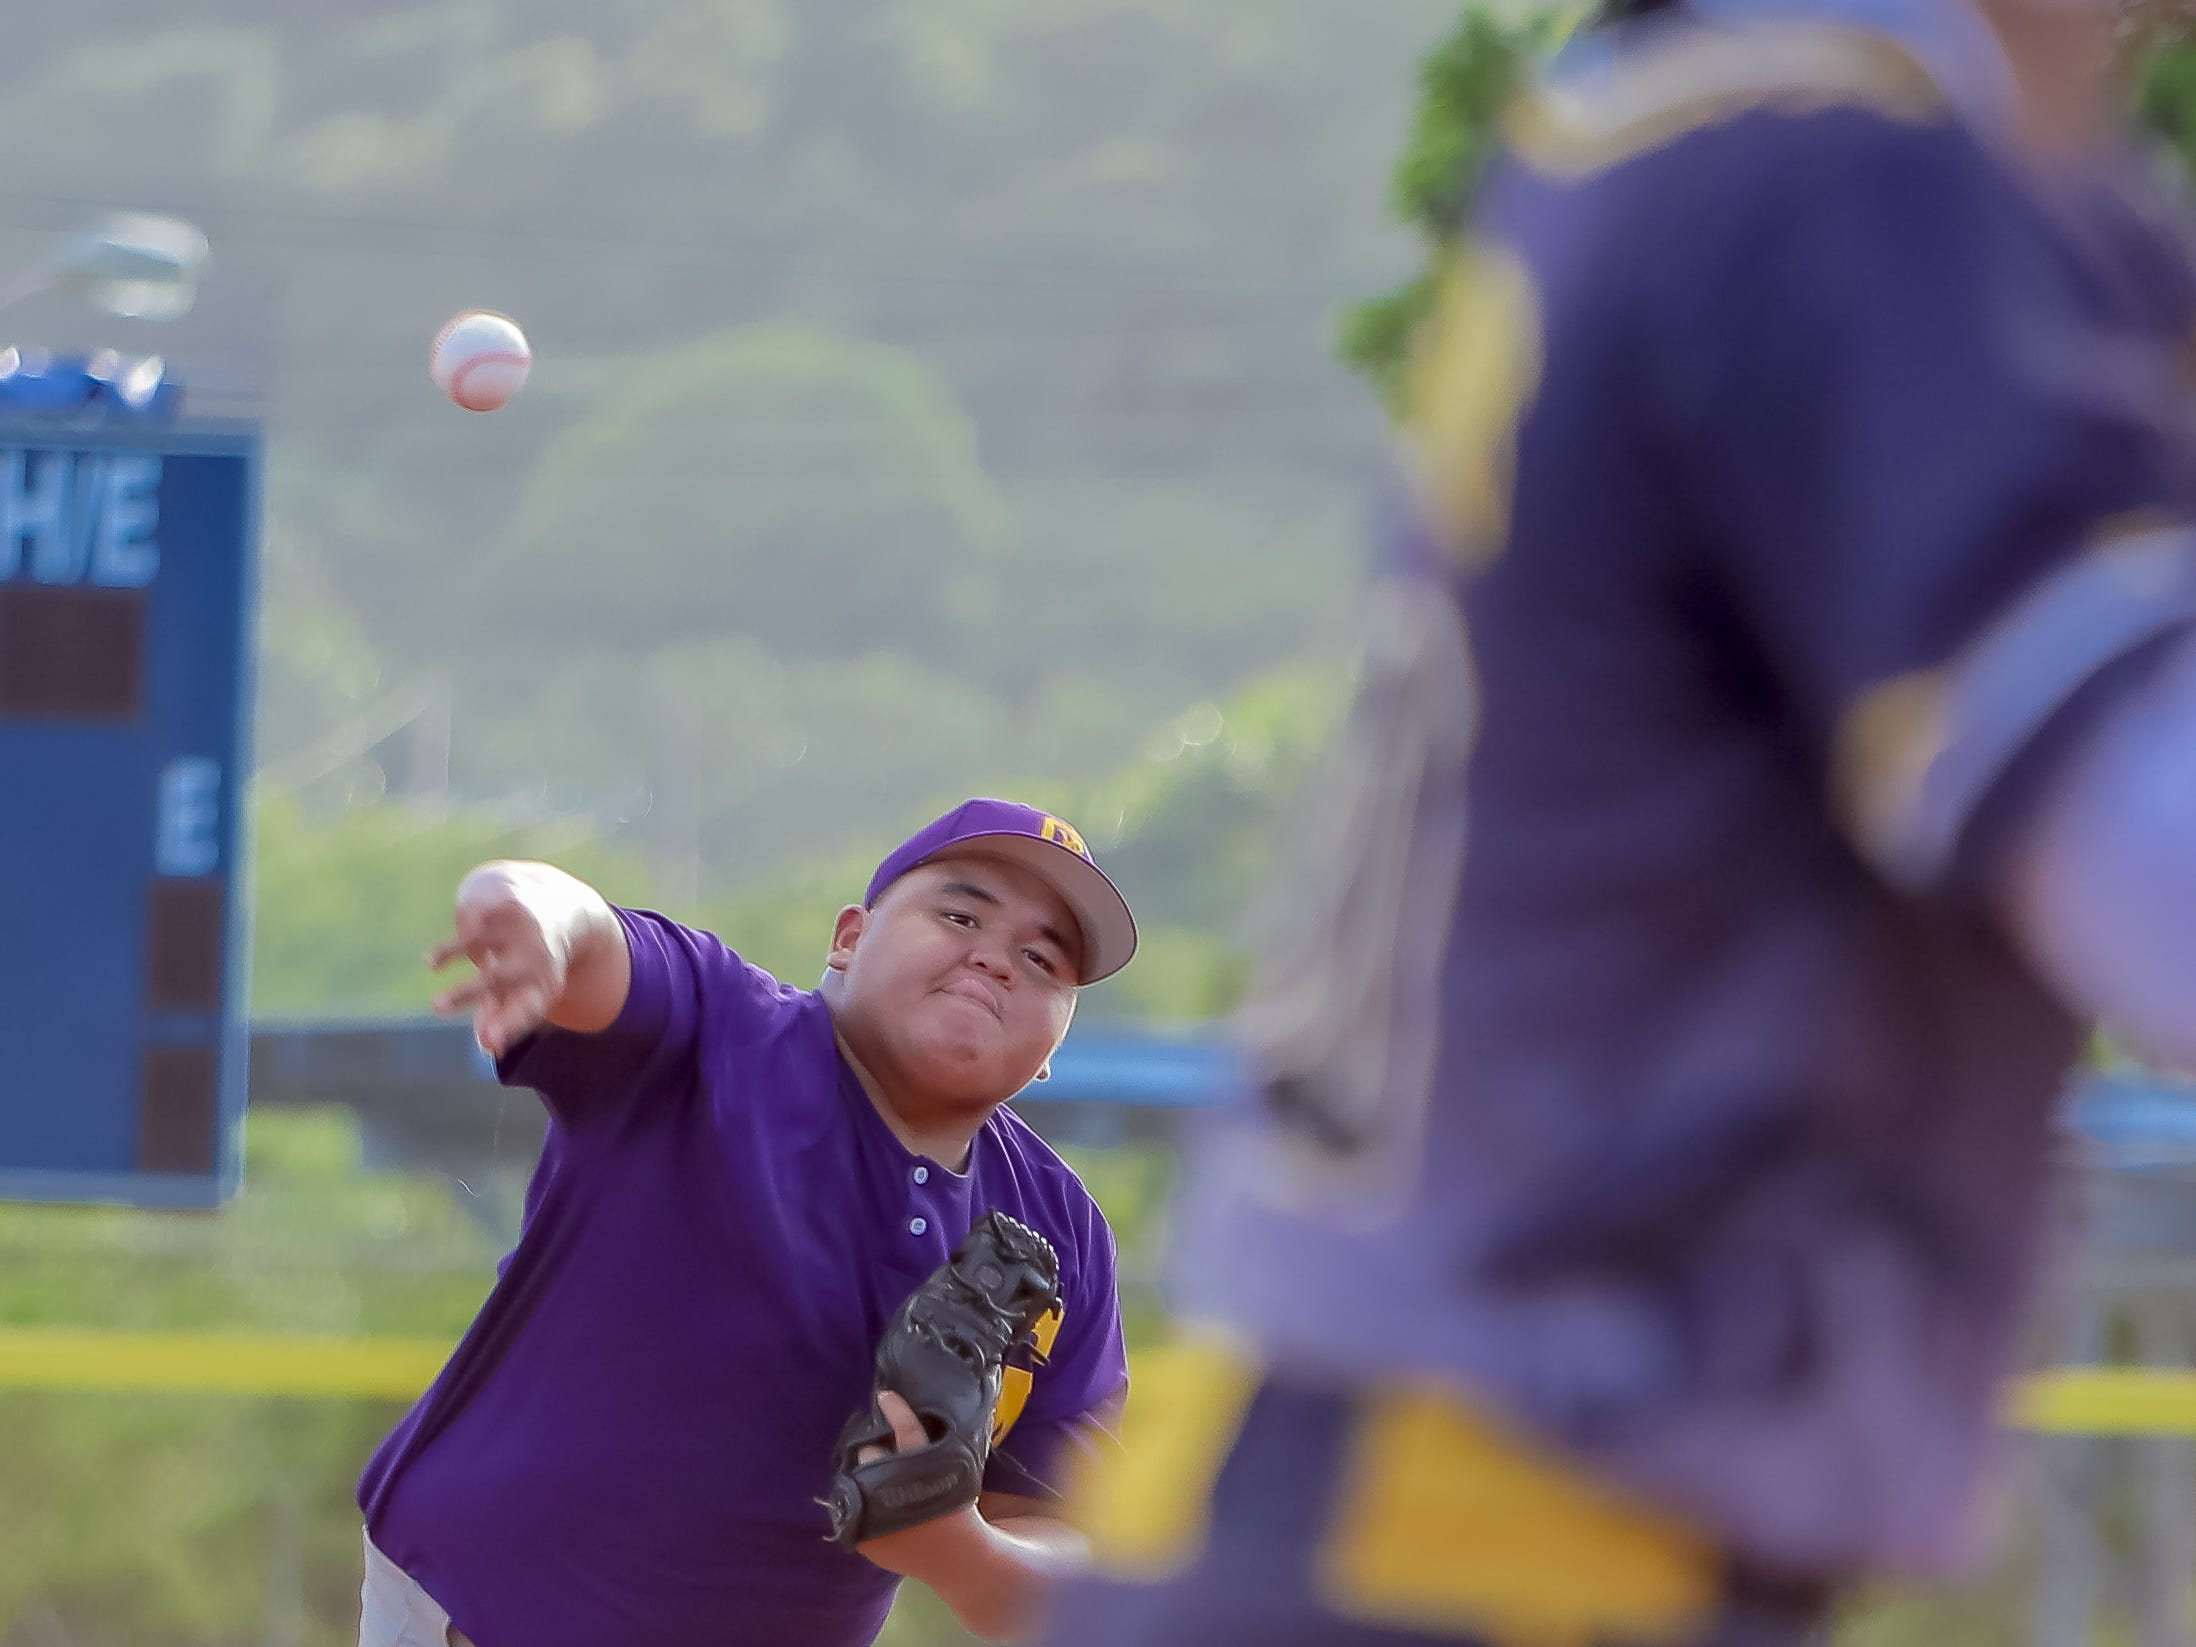 EJ Cali of George Washington High School throws a pitch against a Guam High batter.